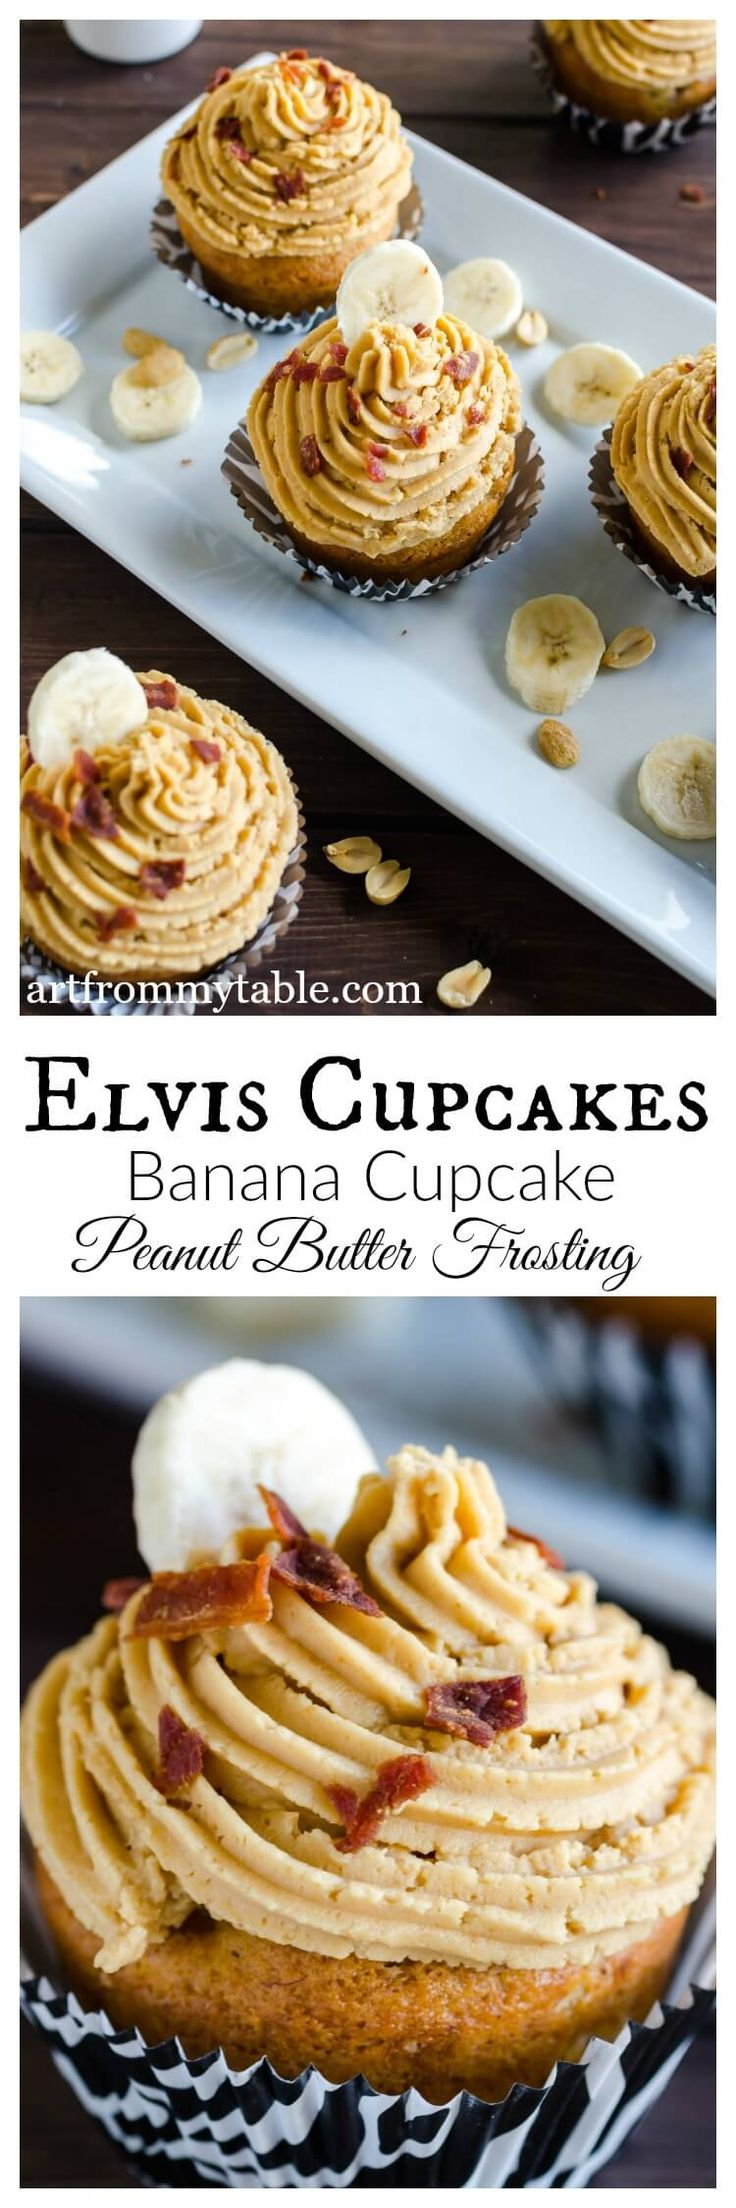 You can't help falling in love with these Elvis Cupcakes. Banana cupcakes topped with peanut butter frosting and bits of real bacon.